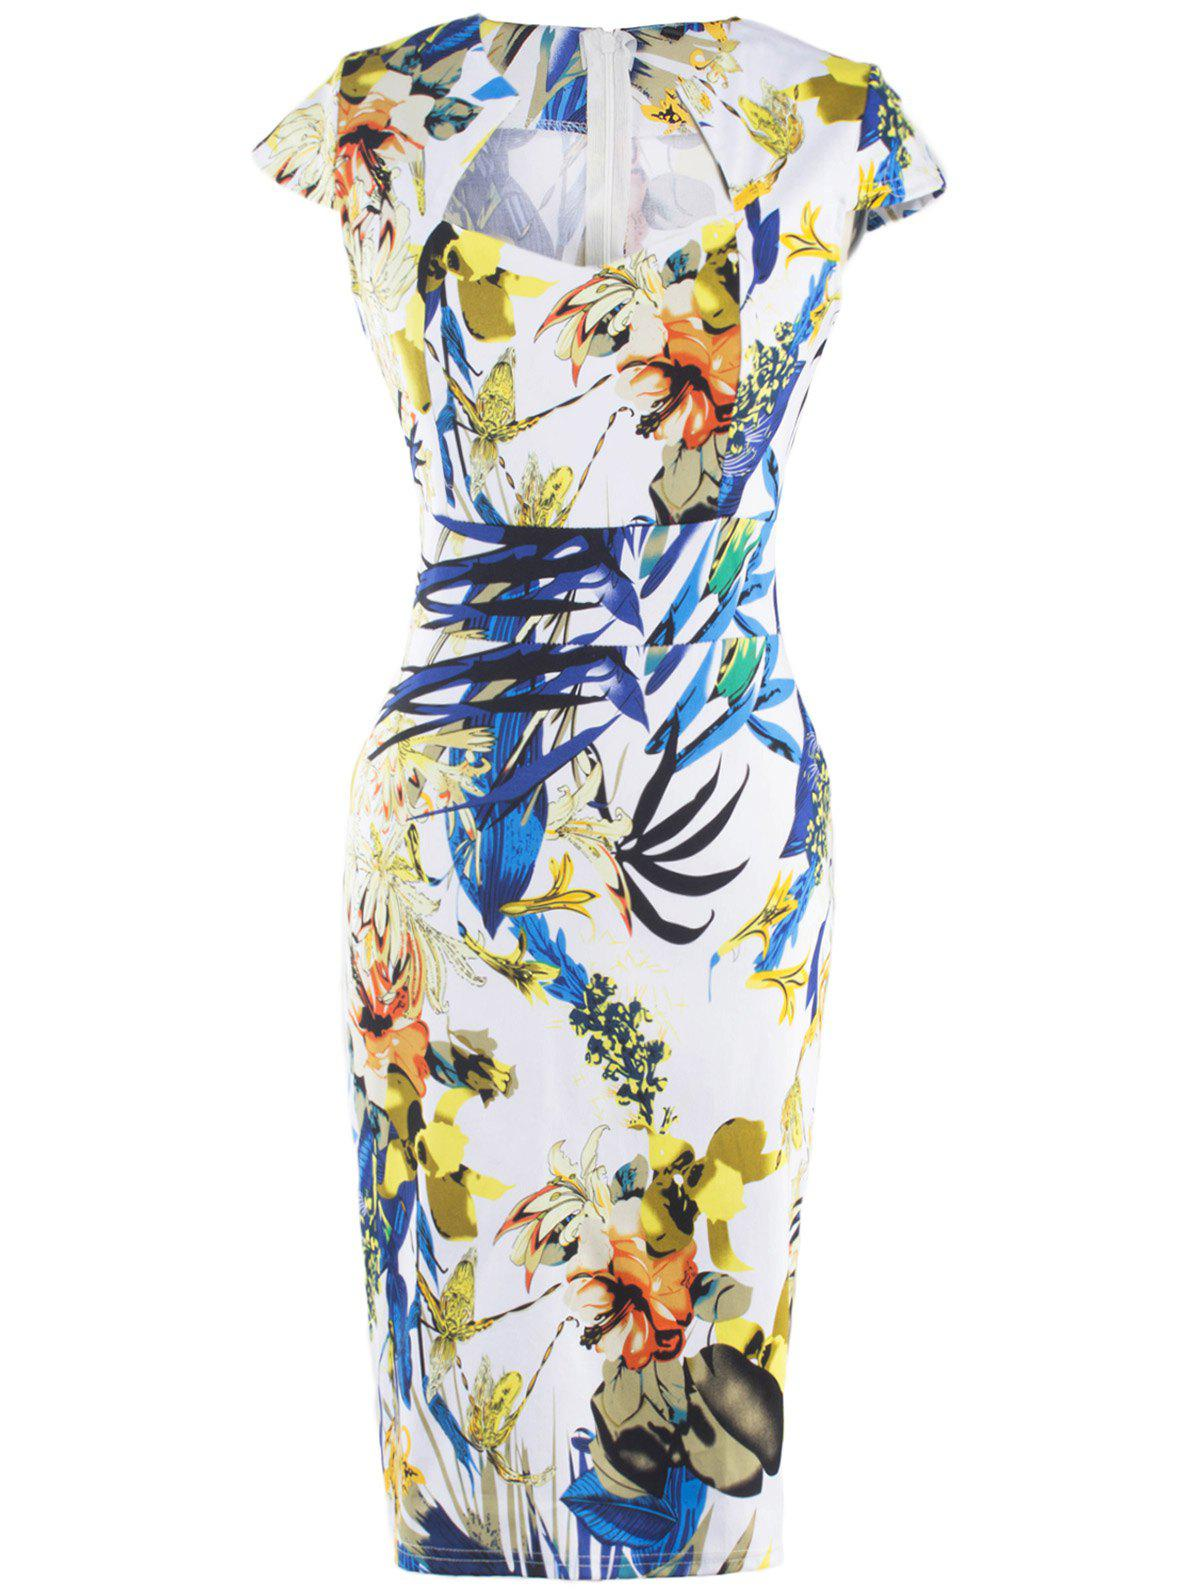 Chic Women's Floral Print High Waist Sheath Dress